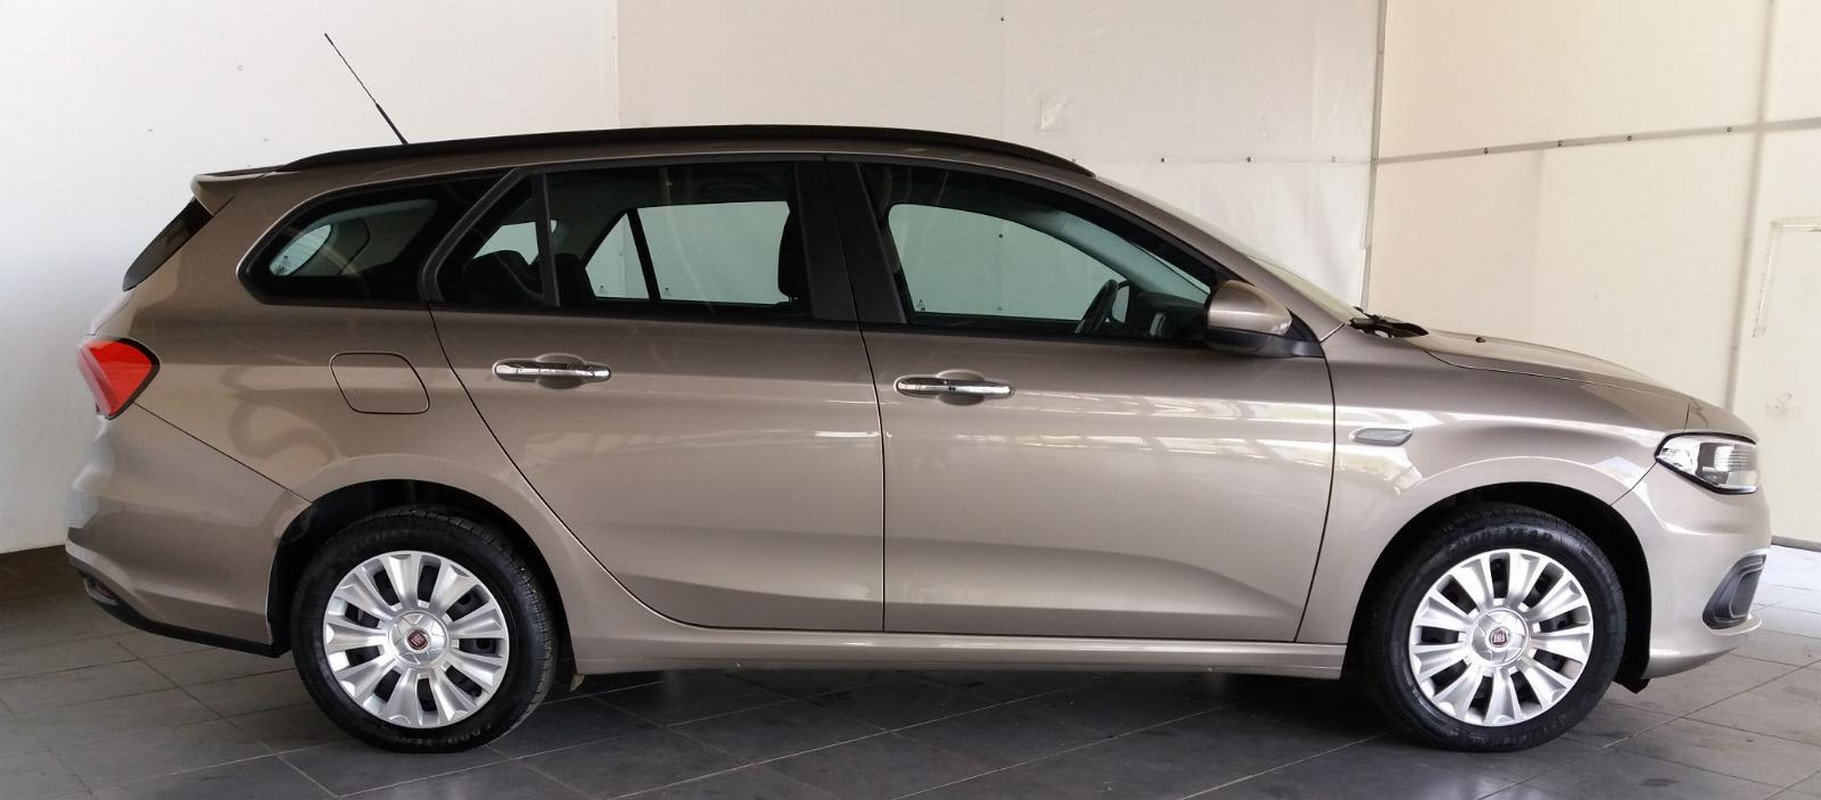 Fiat Tipo SW 1.6 Mjt S&S Easy Business Station Wagon 2016 4